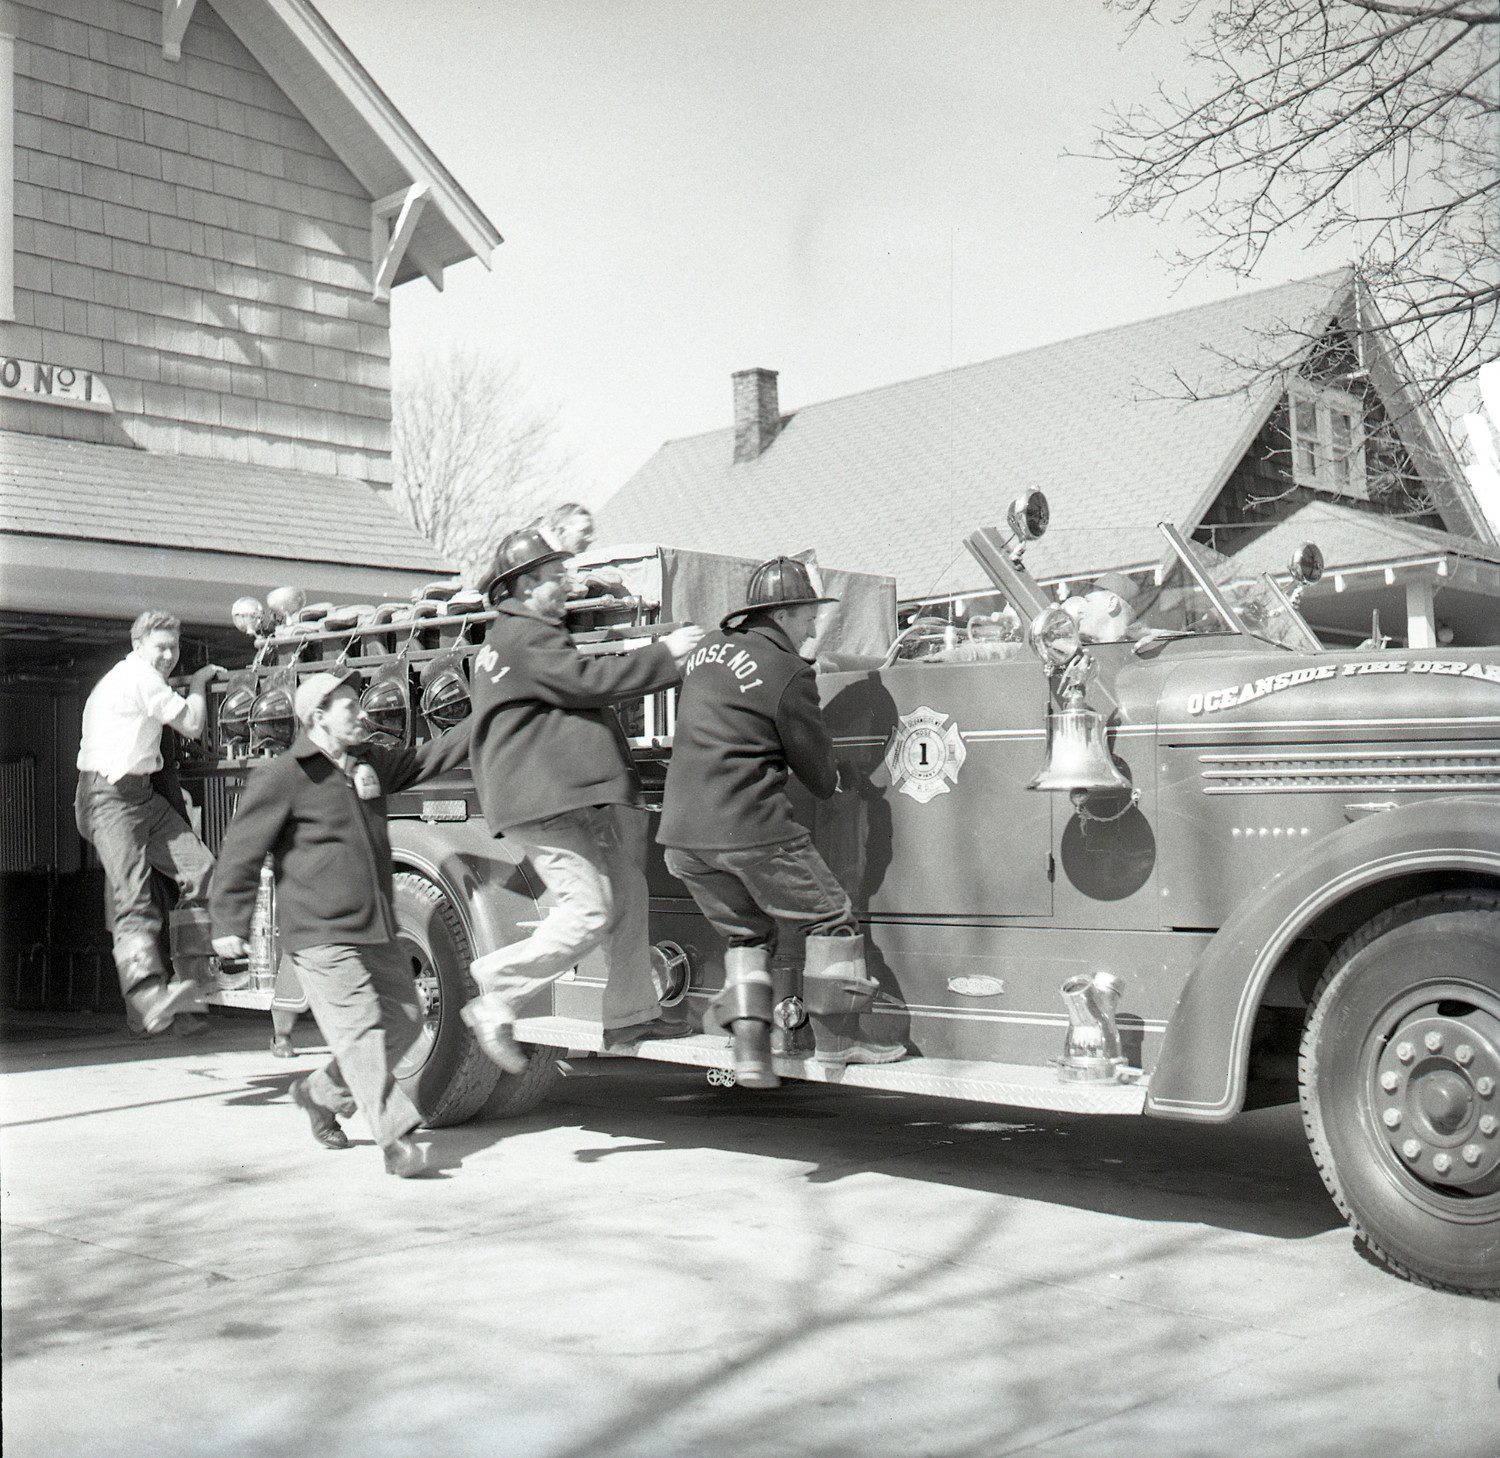 Members of Hose Company No. 1 responded to an alarm around the 1950s. The book is slated to contain 500 such historical pictures.